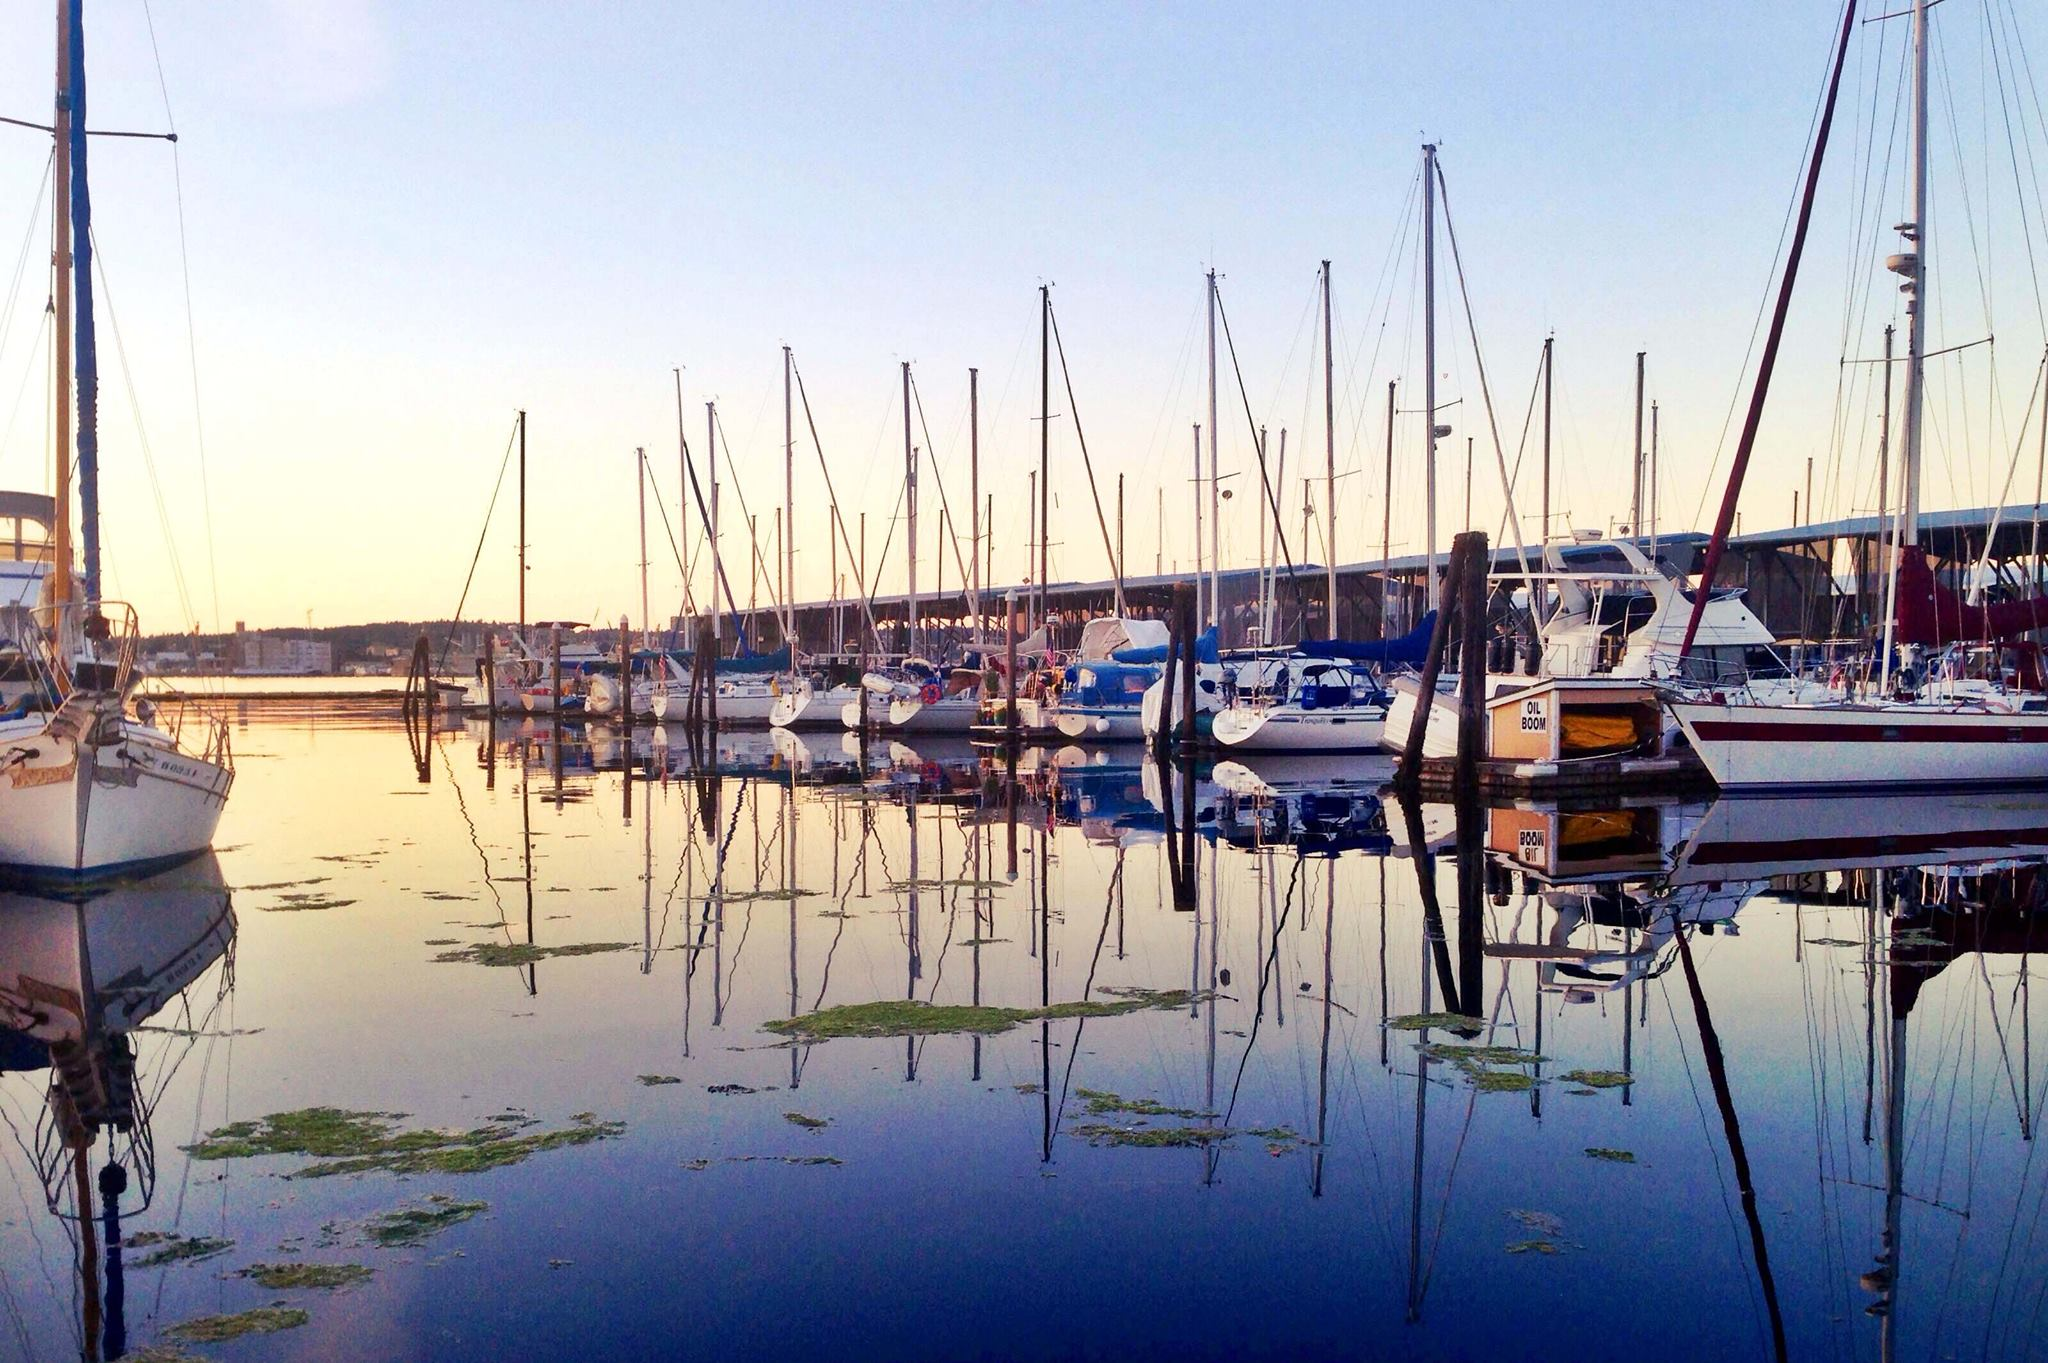 Image from the    Port Orchard Marina    -  The marina is on Sinclair Inlet in Port Orchard, just 4 miles away.